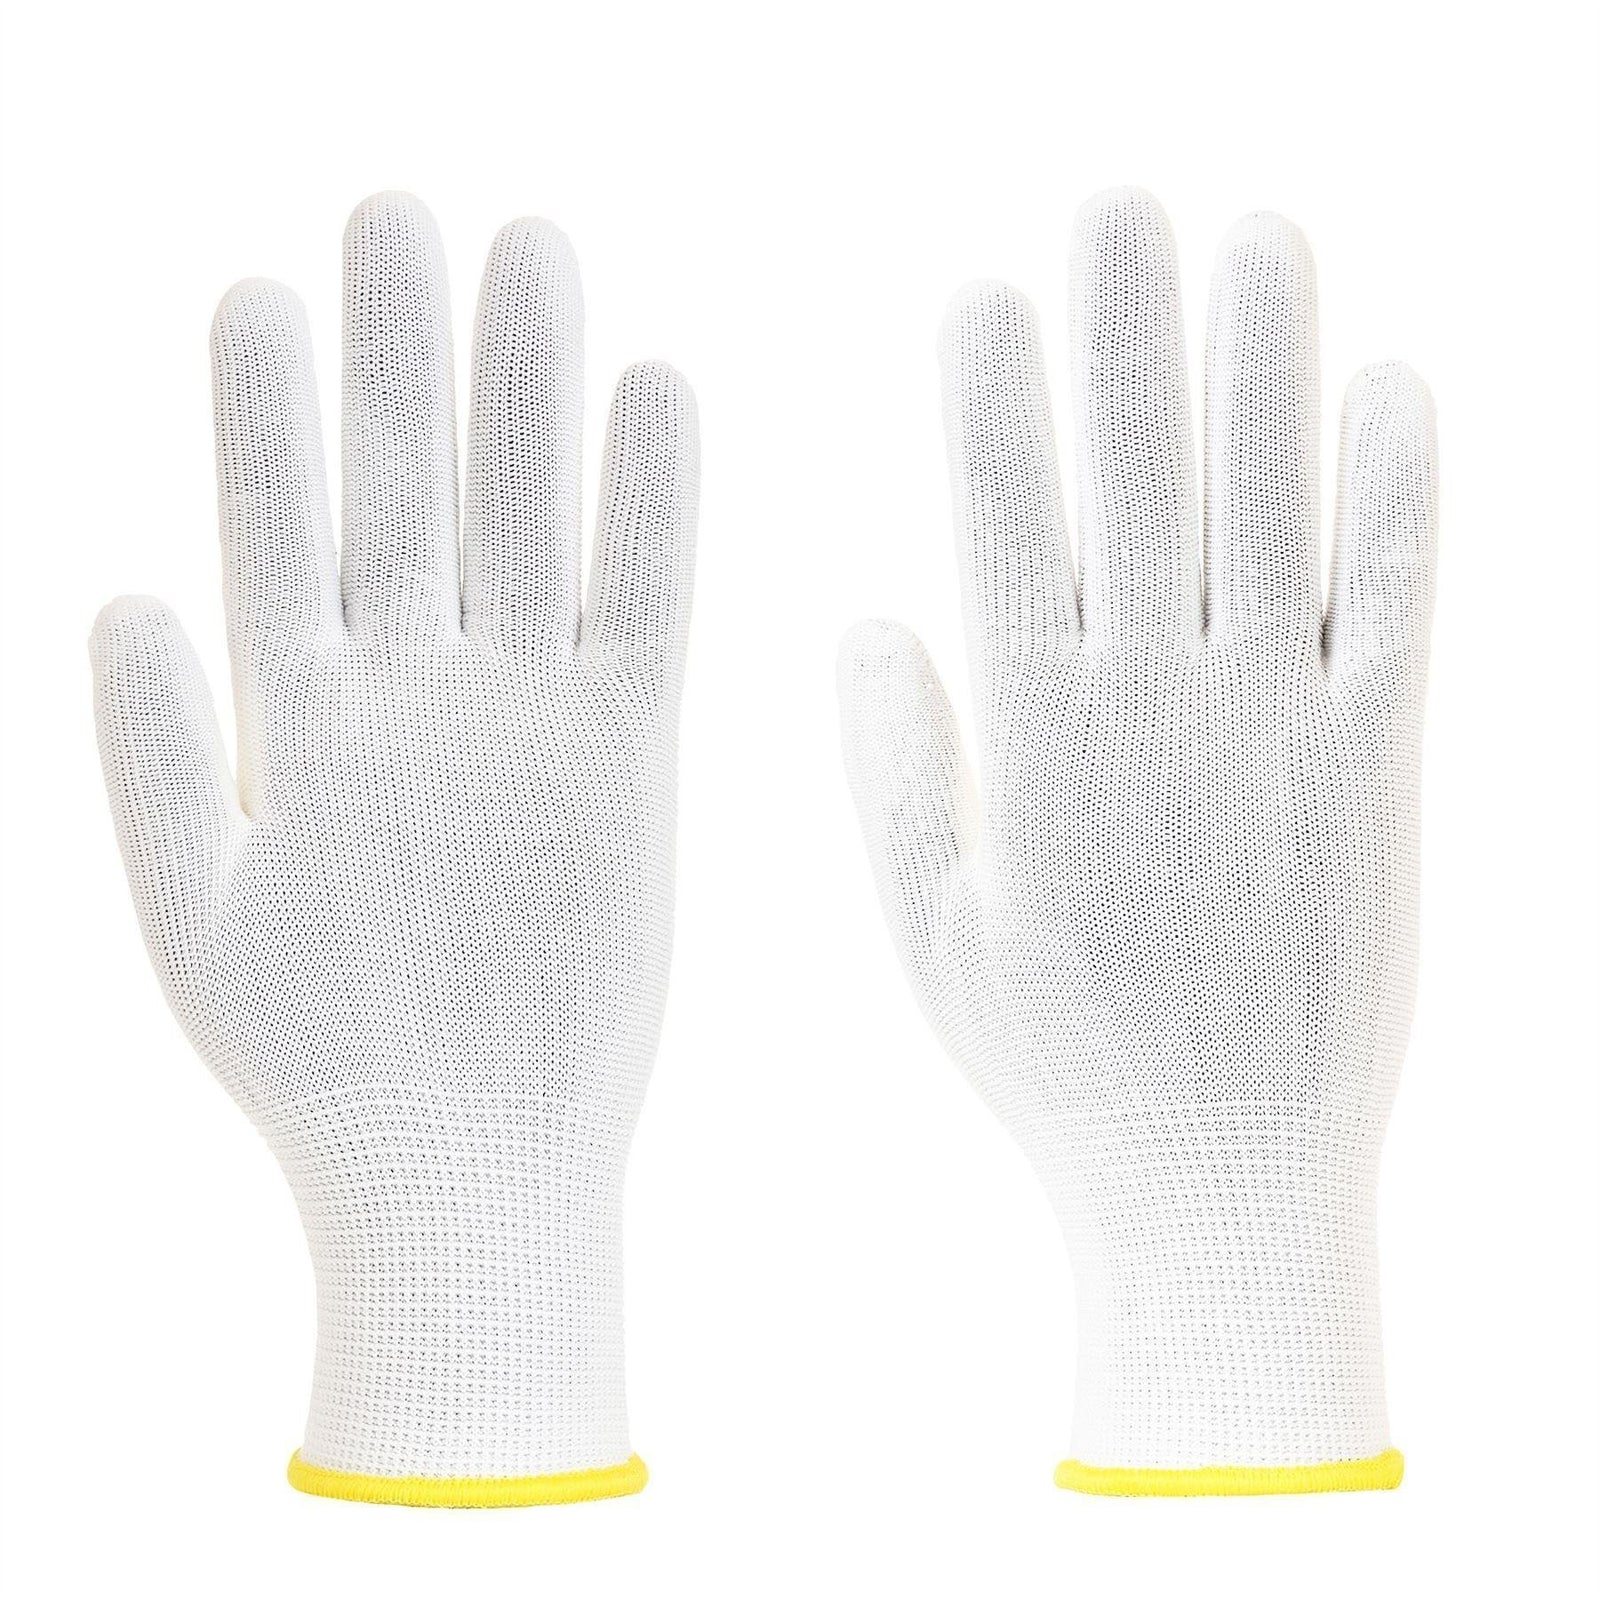 Portwest Assembly Glove (Pack of 960) A020 - reid outdoors